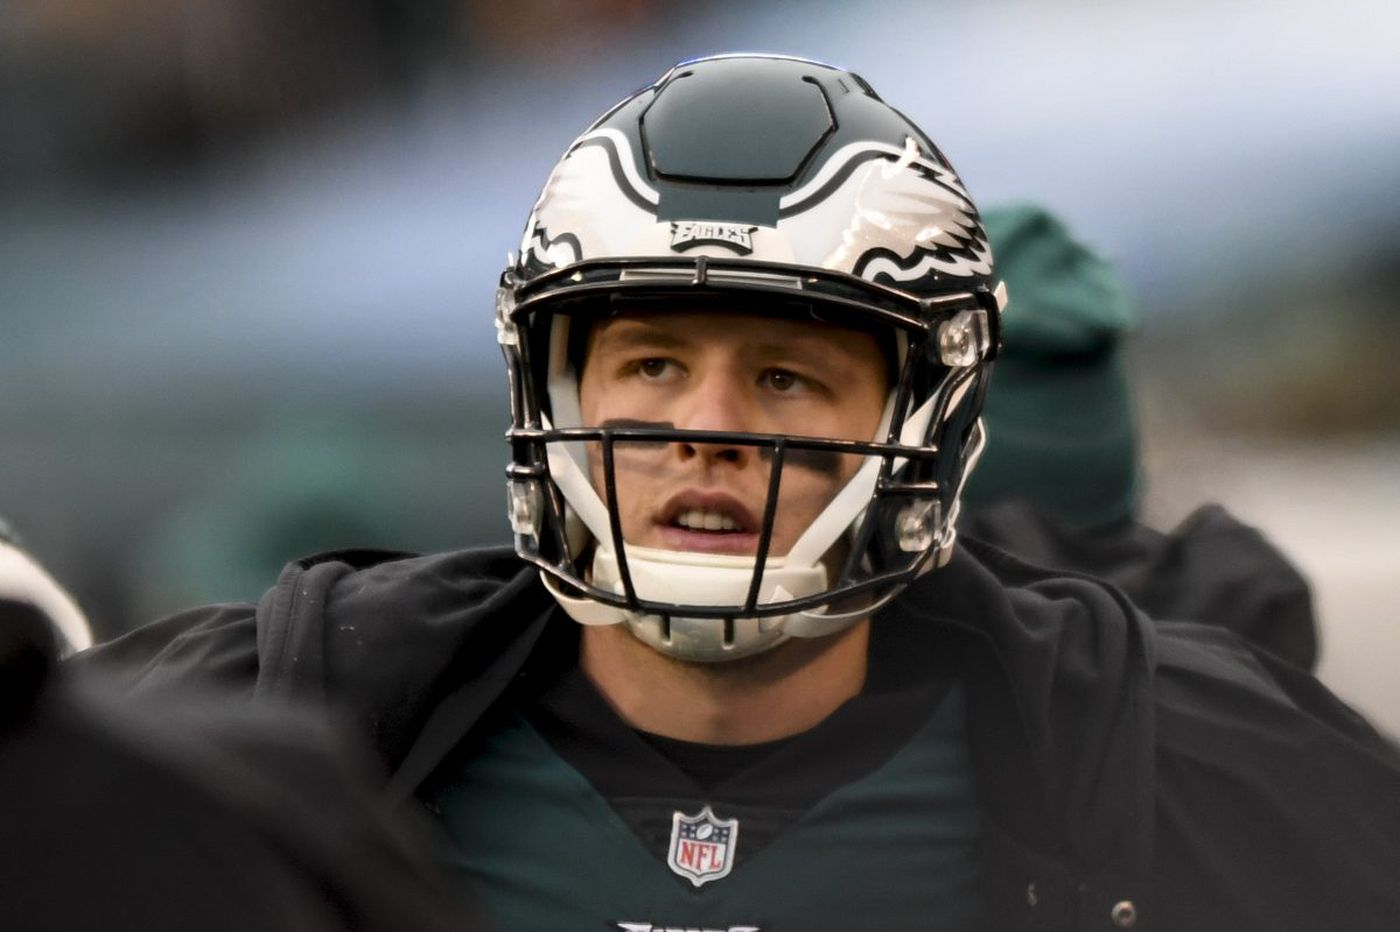 The Eagles' offseason program is around the corner, and backup QB Nate Sudfeld will be a player to watch | Early Birds